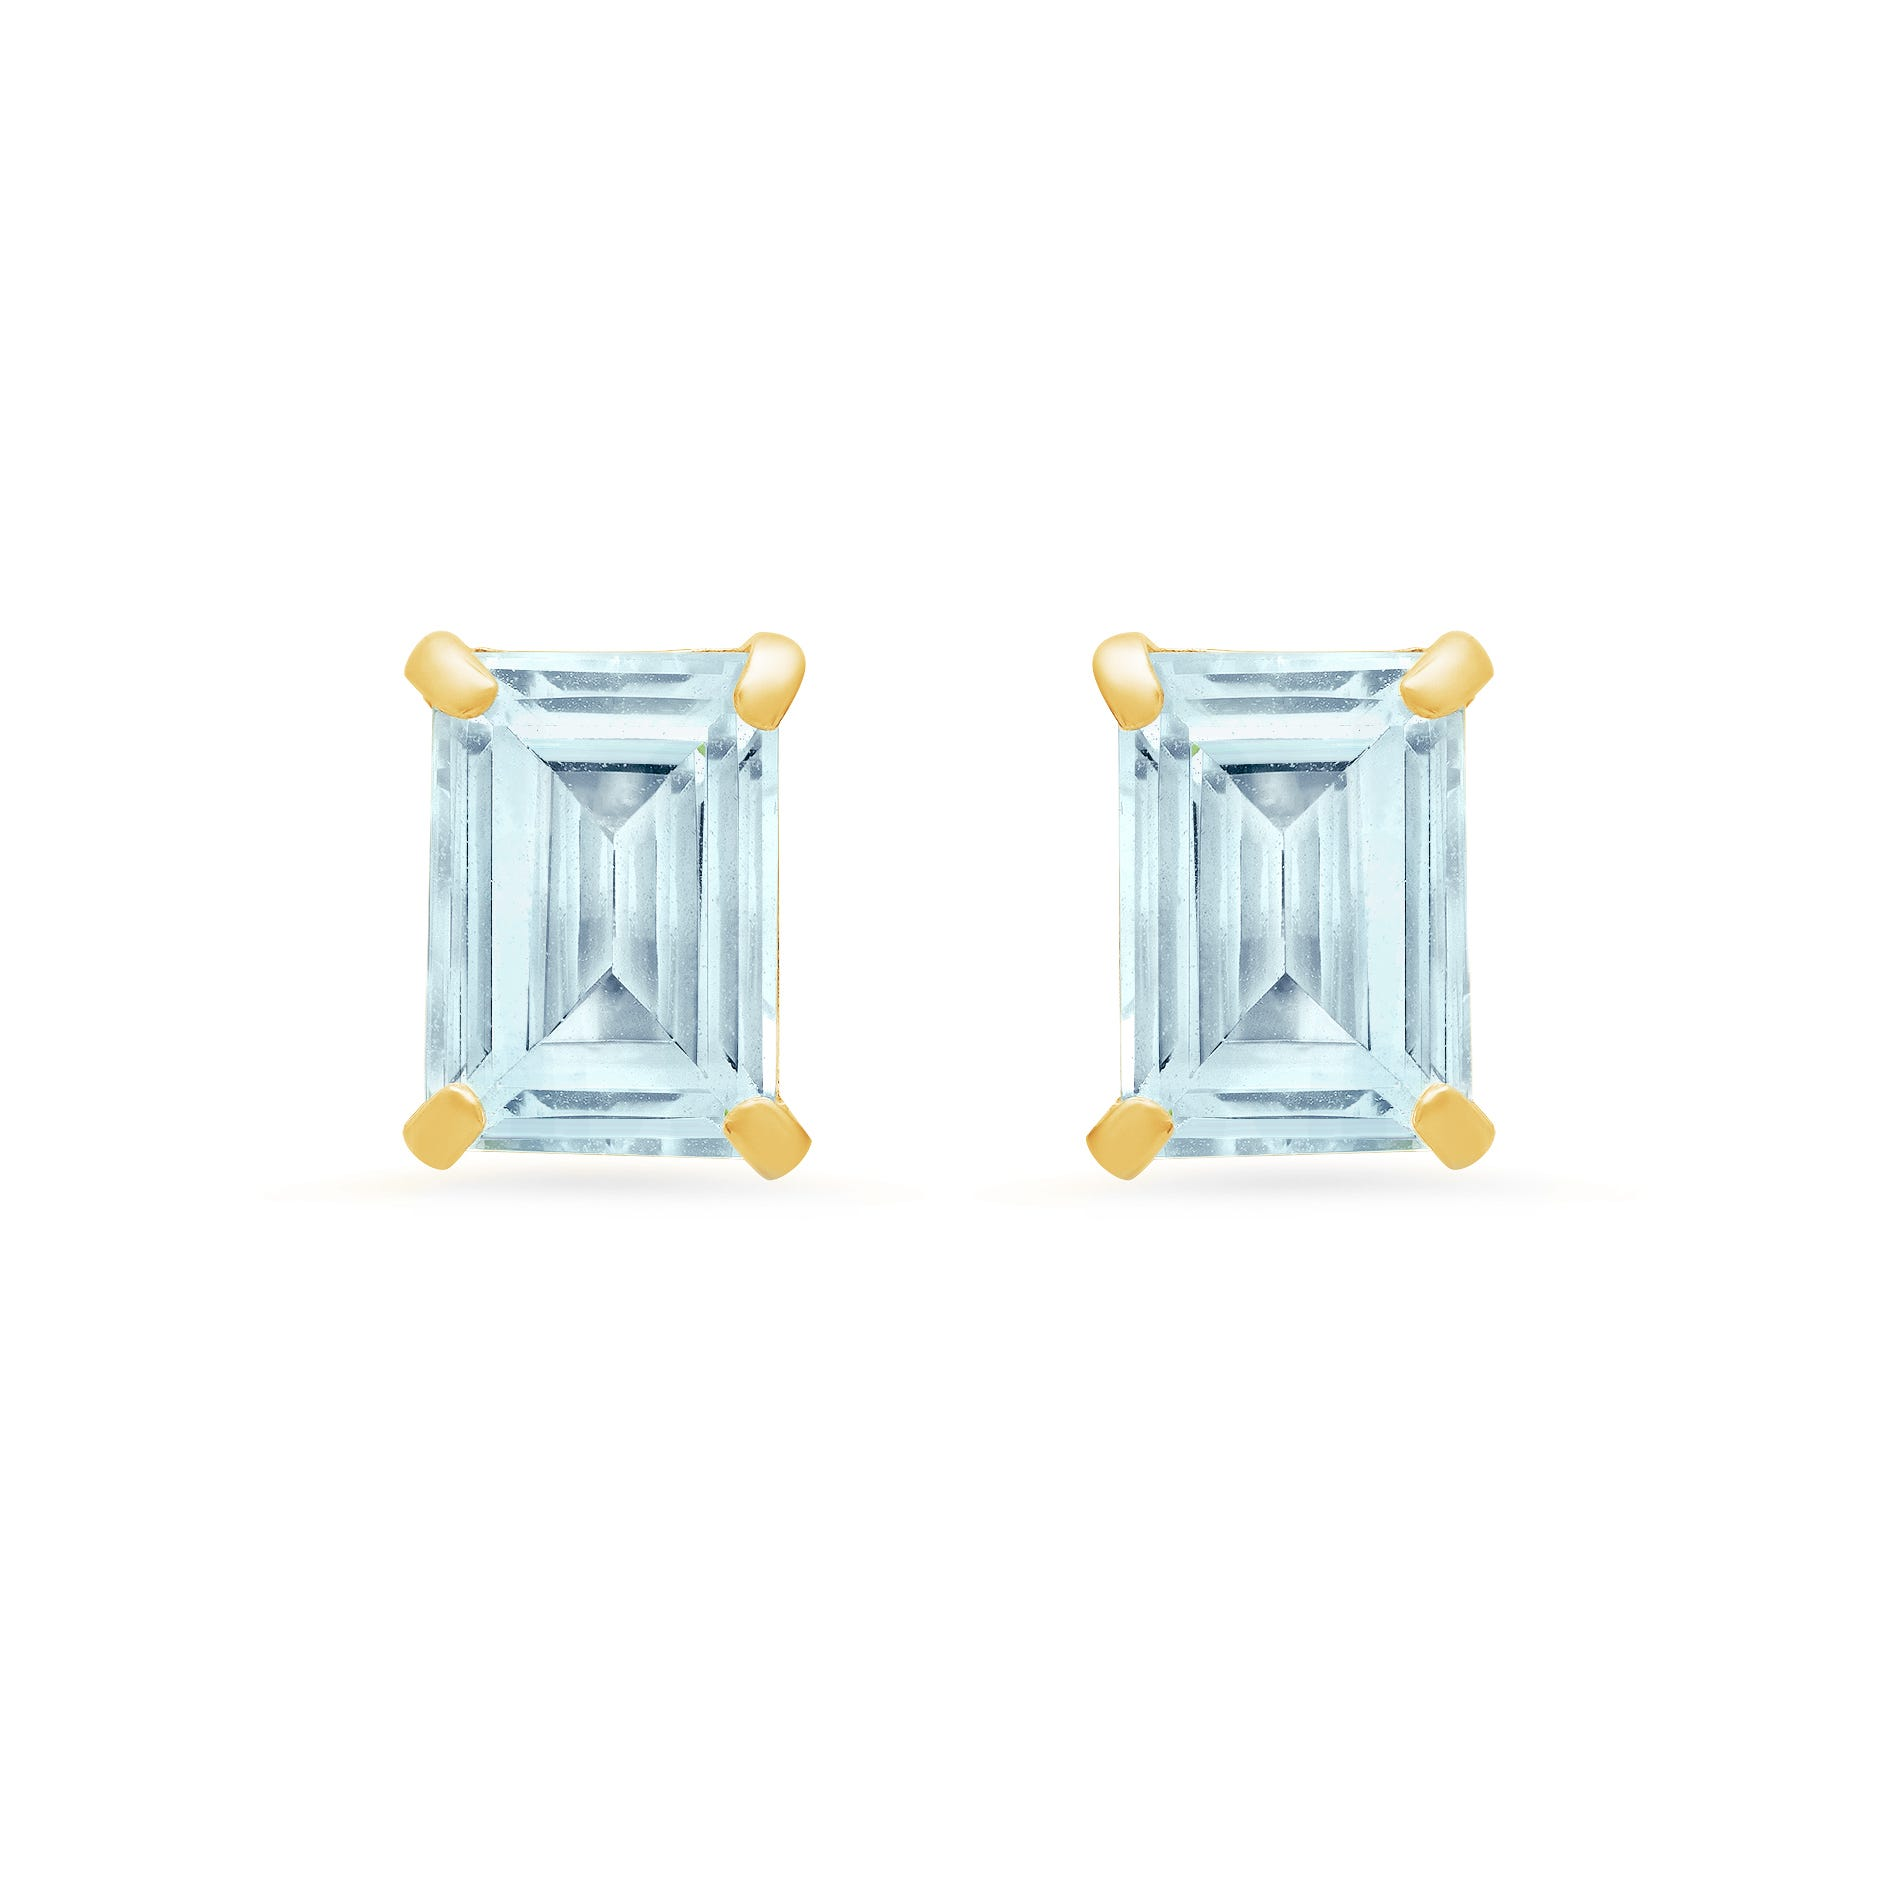 Emerald-Cut Aquamarine Solitaire Stud Earrings in 14k Yellow Gold